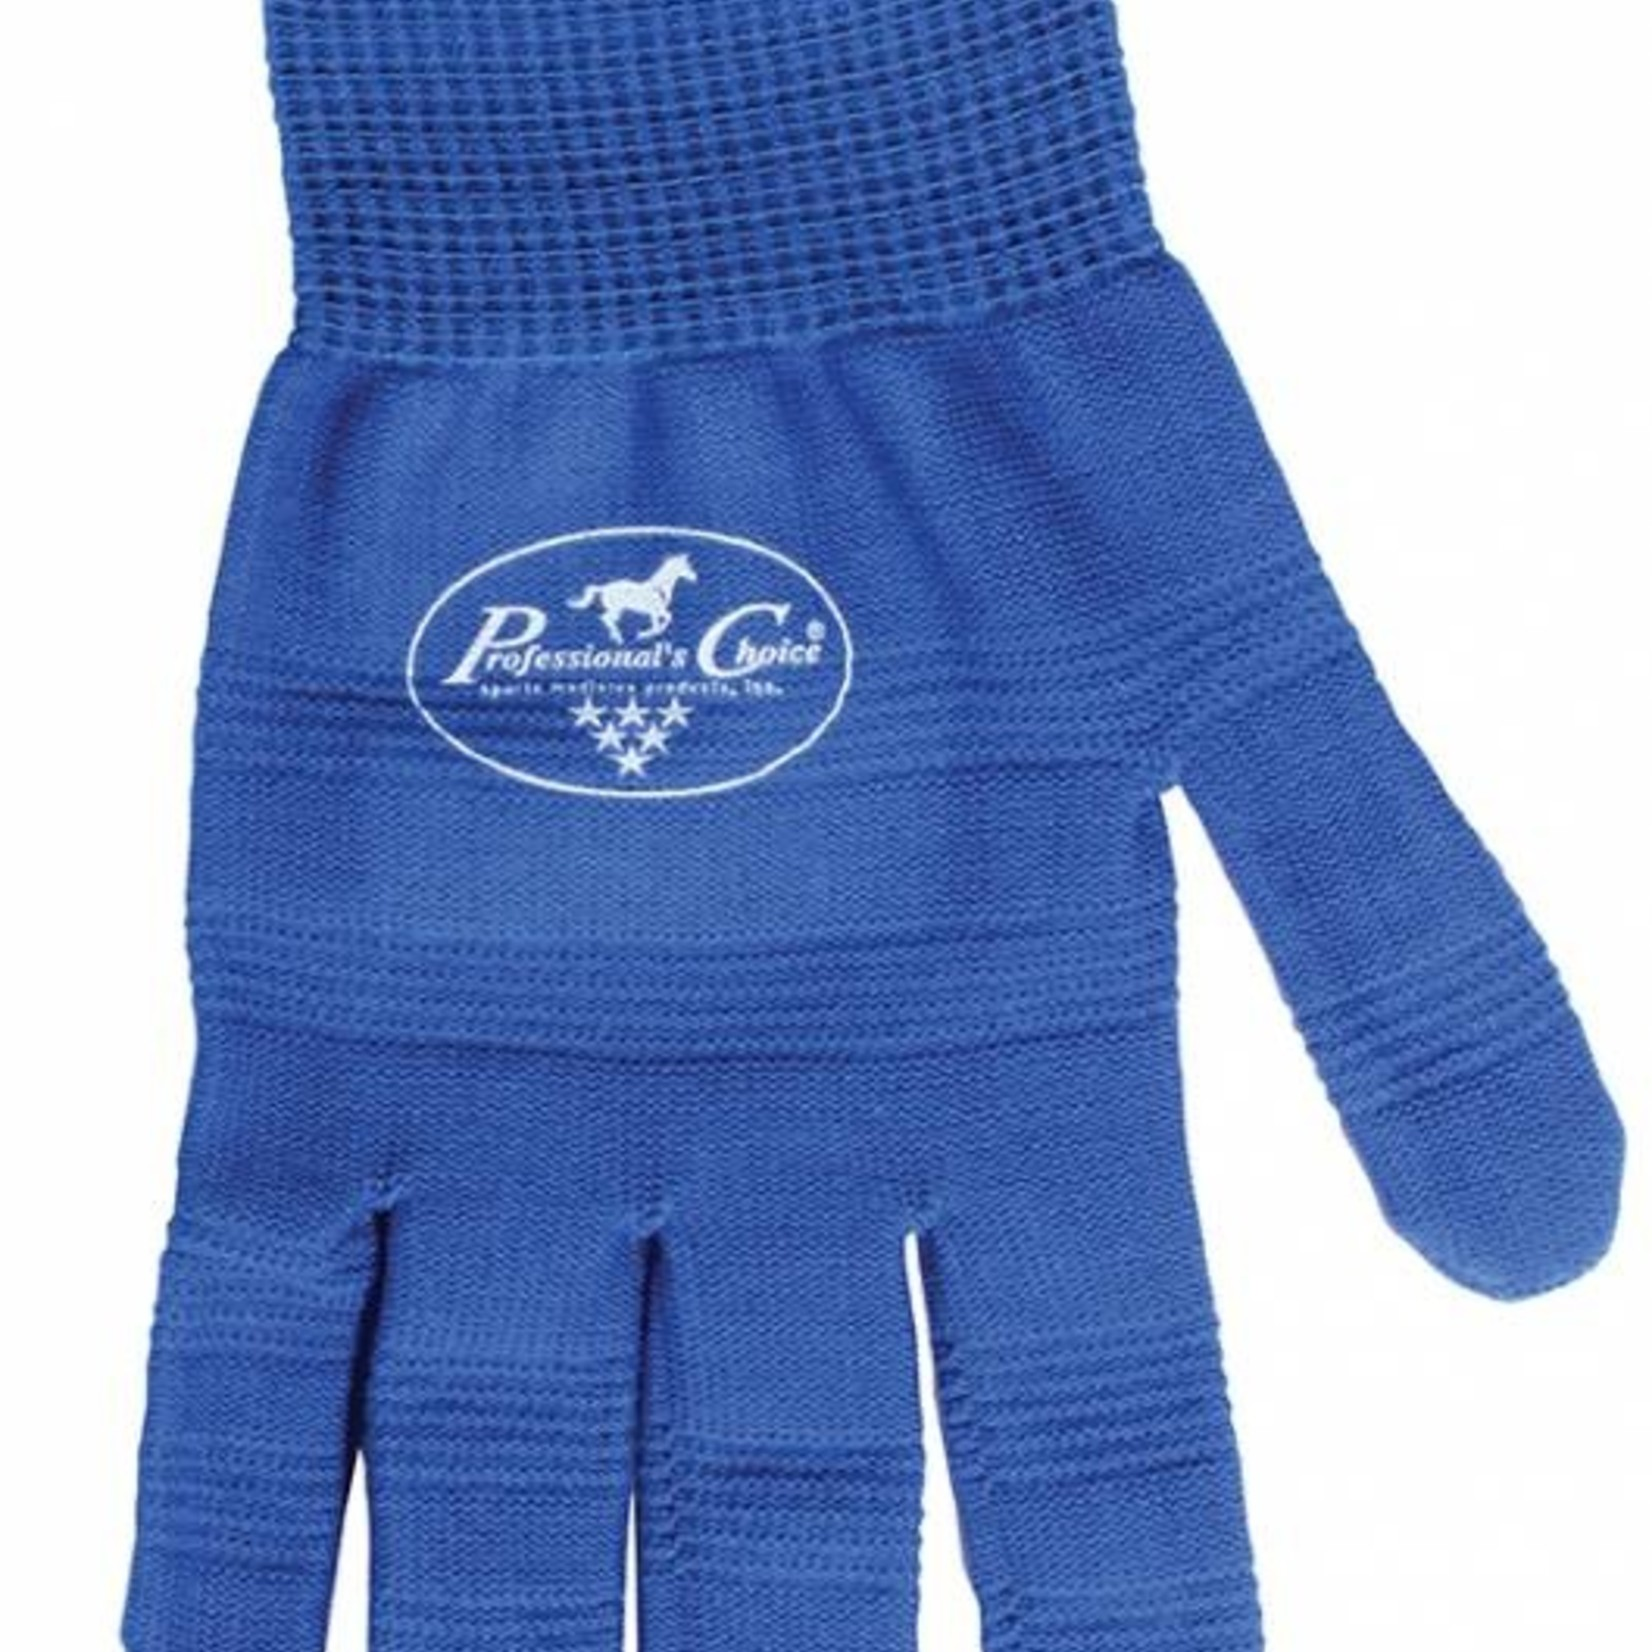 Professional's Choice Blue Roping Gloves Lrg